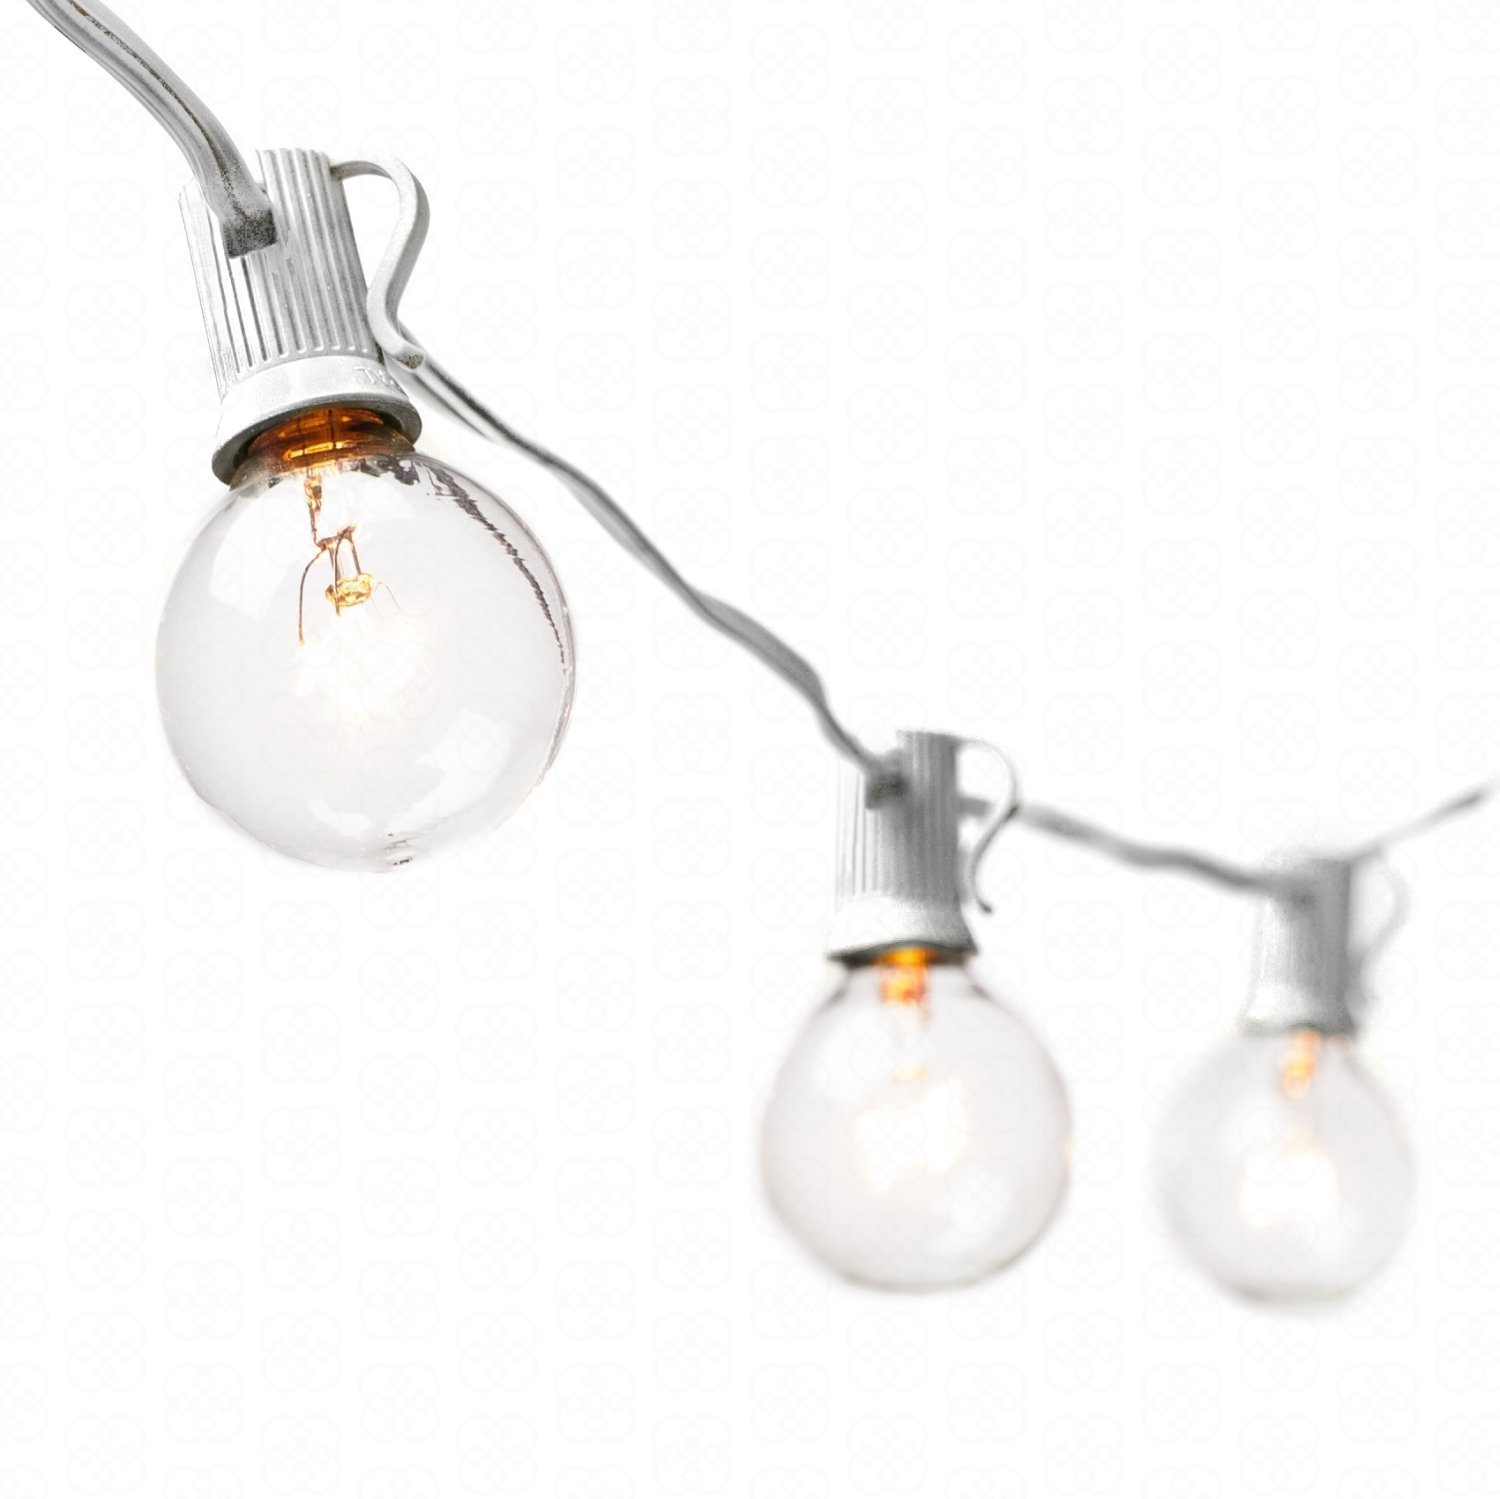 Deneve Globe String Lights with G40 Bulbs - Connectable Outdoor String Lights for Garden Party Patio Bistro Market Cafe Hanging Umbrella Lamp Backyard Lights